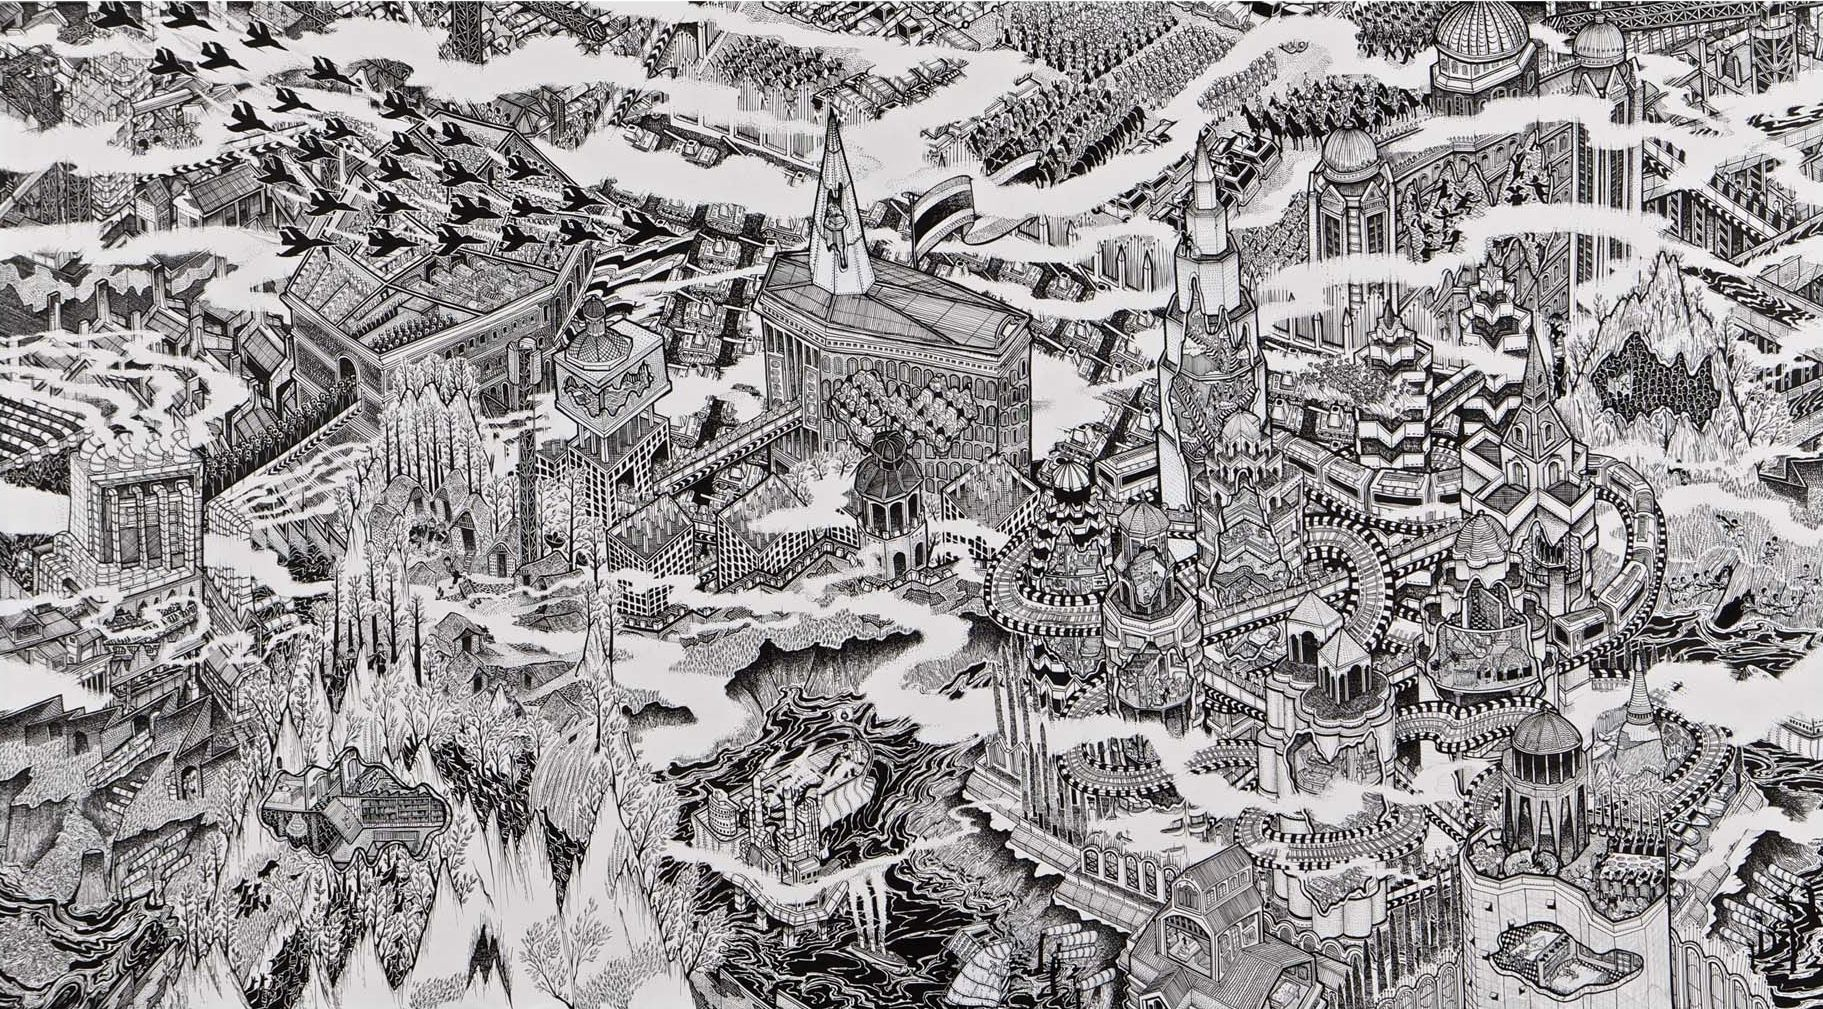 KWANCHAI_Cities-and-Armies_2013_Ink-on-canvas_135x250cm